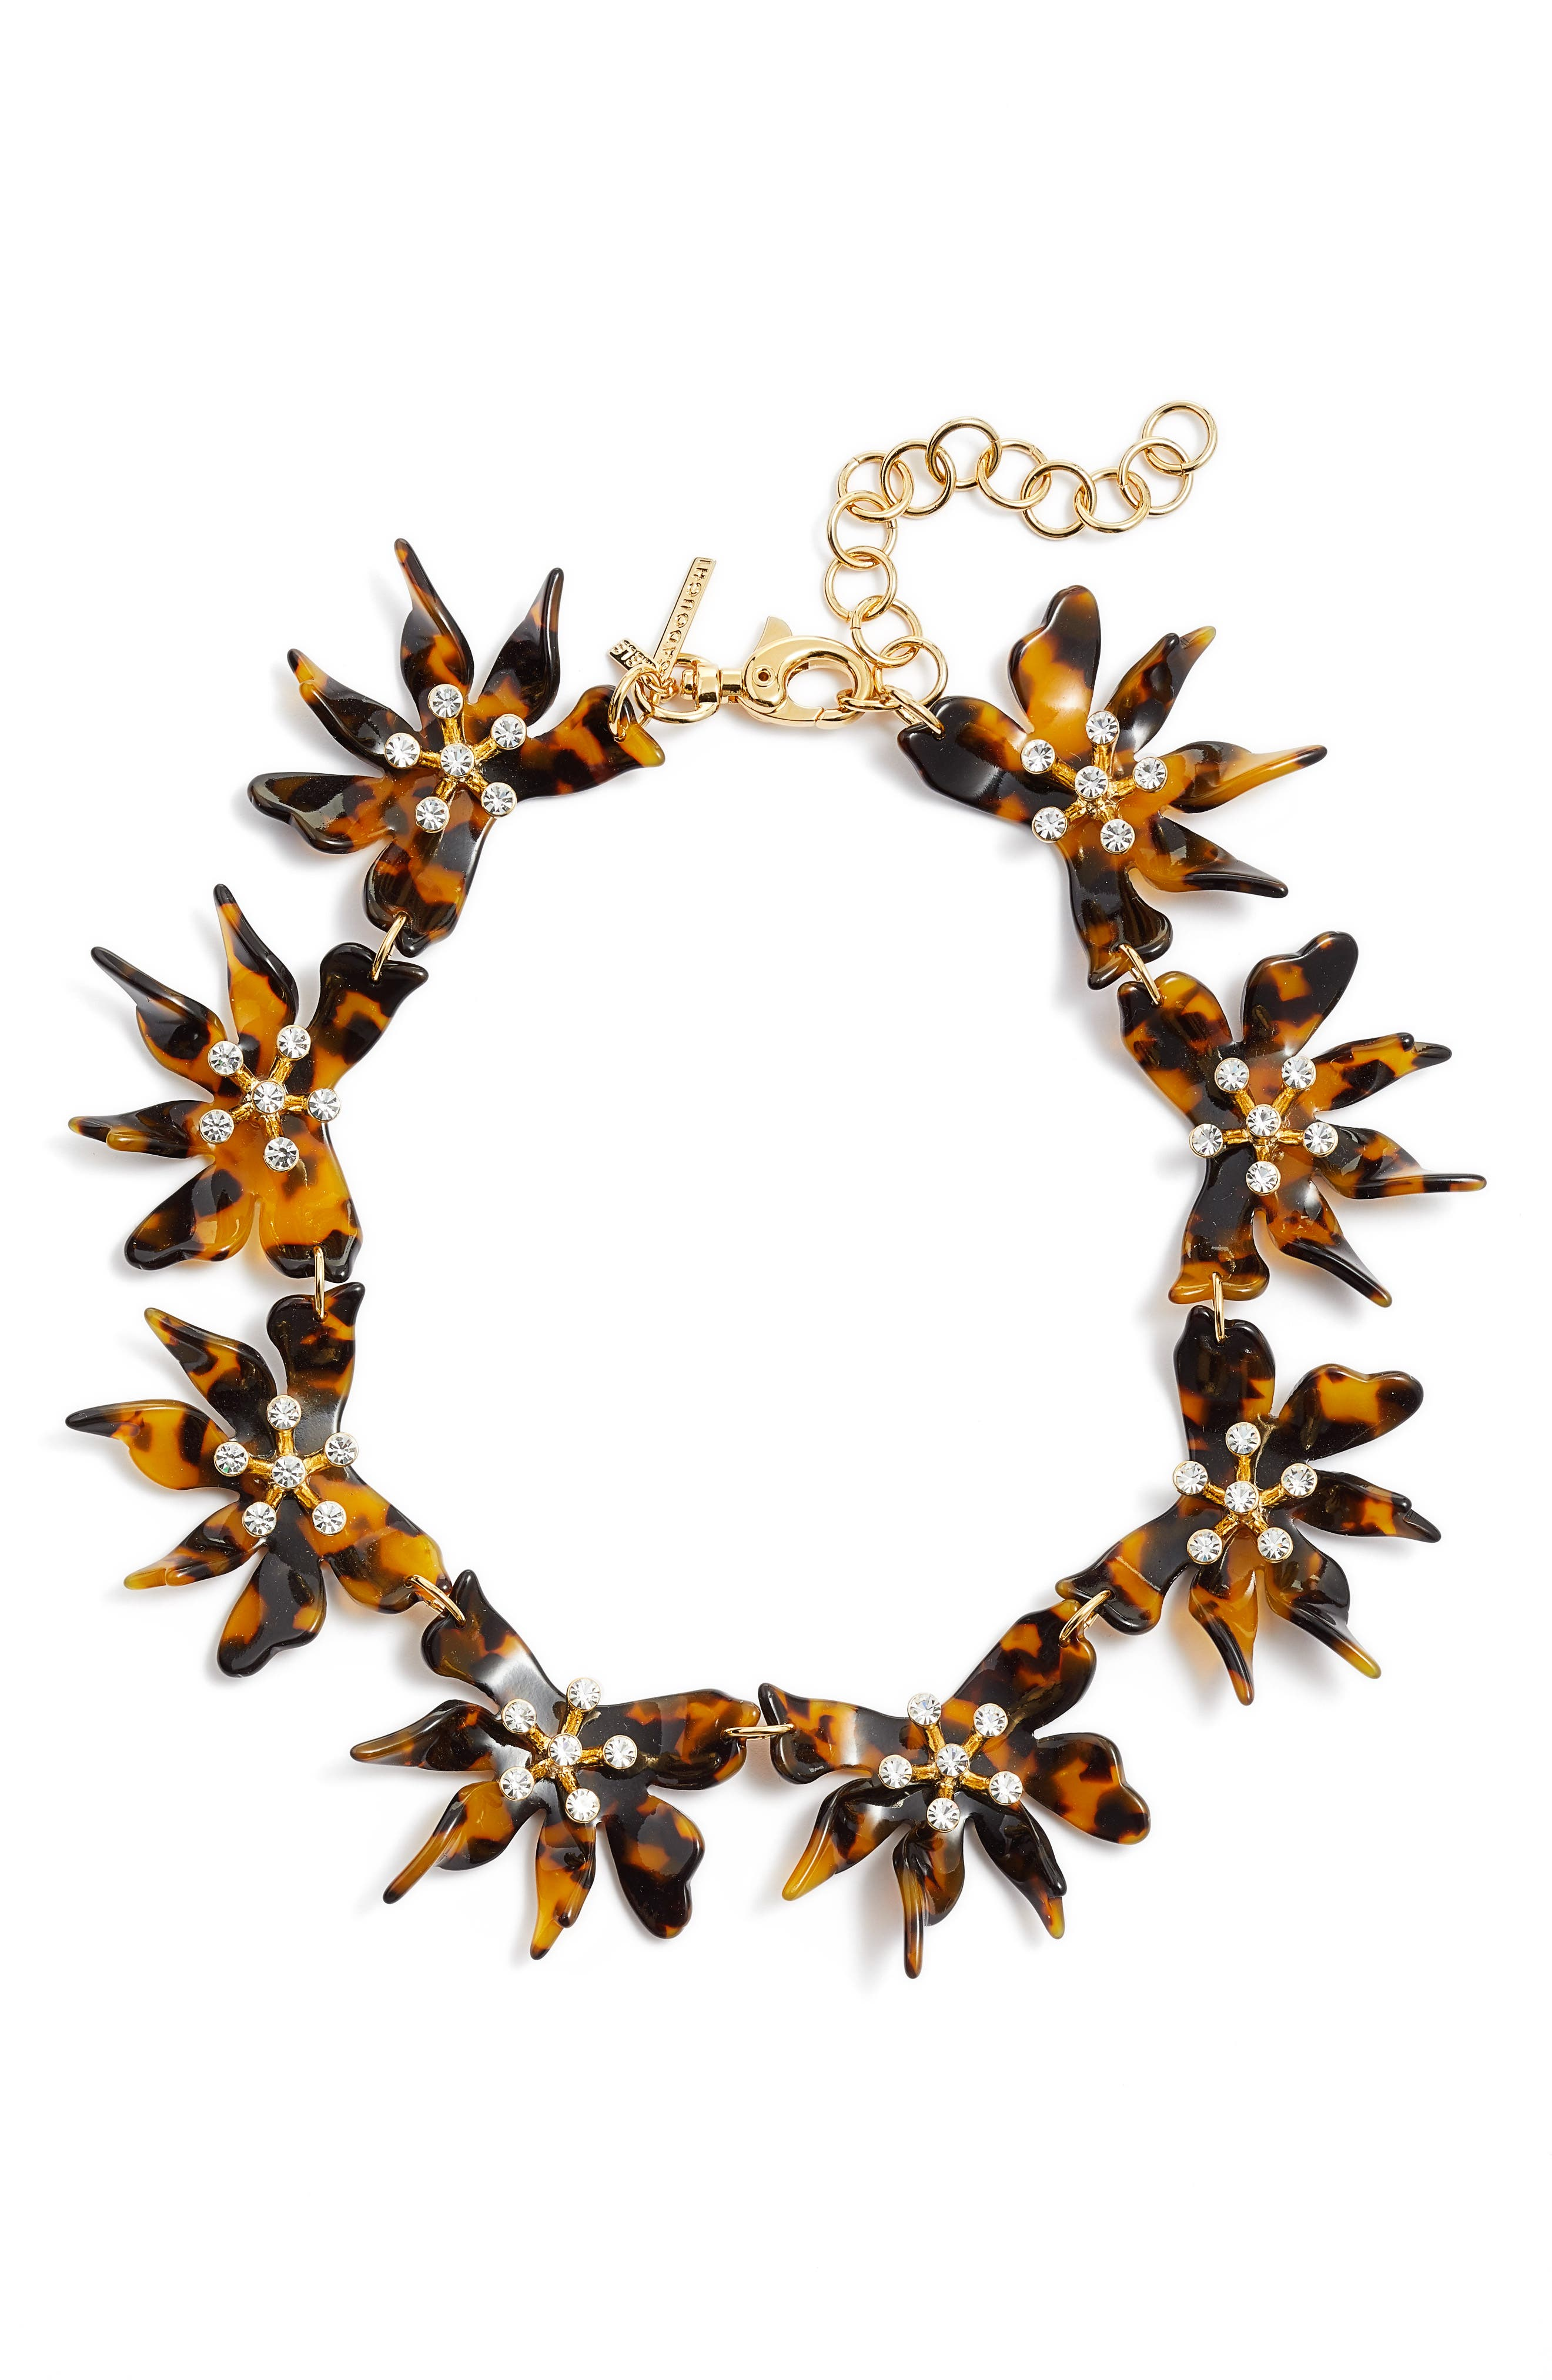 Daffodil Collar Necklace,                             Main thumbnail 1, color,                             200